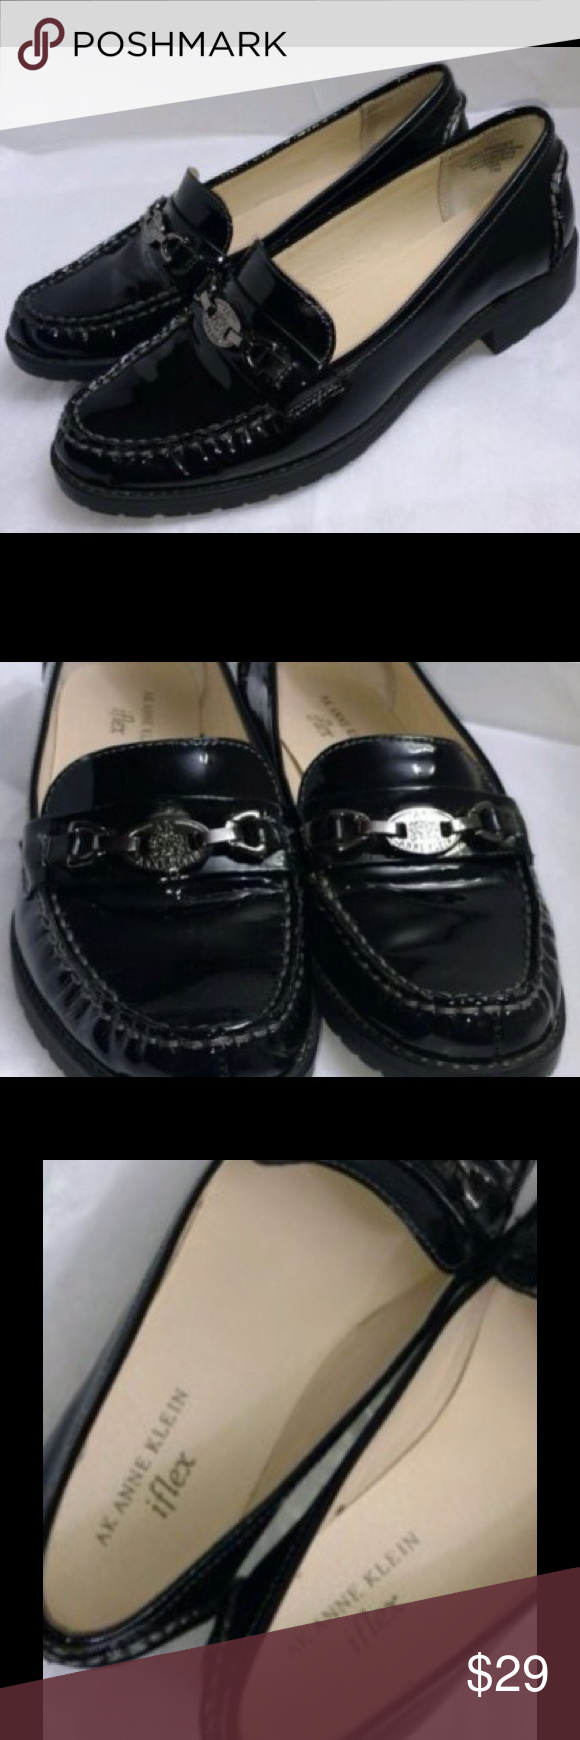 f659aa63c46 Patent Iflex Klein Anne Leather Loafers Loafer New nq71tawx8t